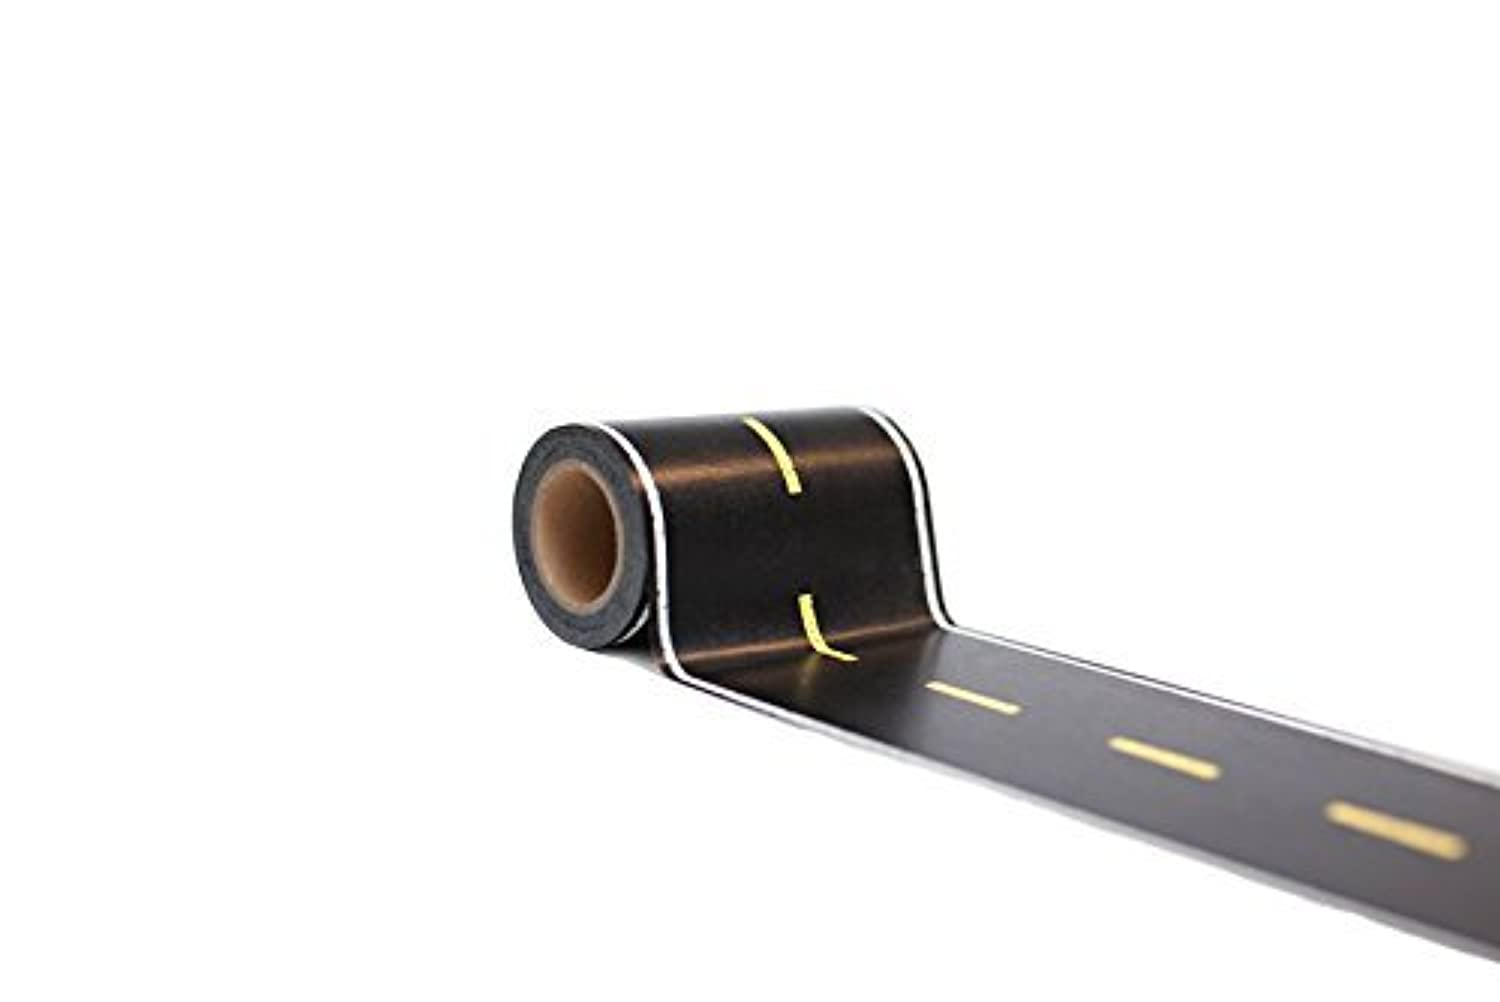 Car Tape Extra Long and Wide! 3.5 in x 50 ft Toy Car Road Tape Track for Kids Great Accessory to Die Cast Cars and Train Sets. Sticker with Printed Street to Play on Floors. [並行輸入品]